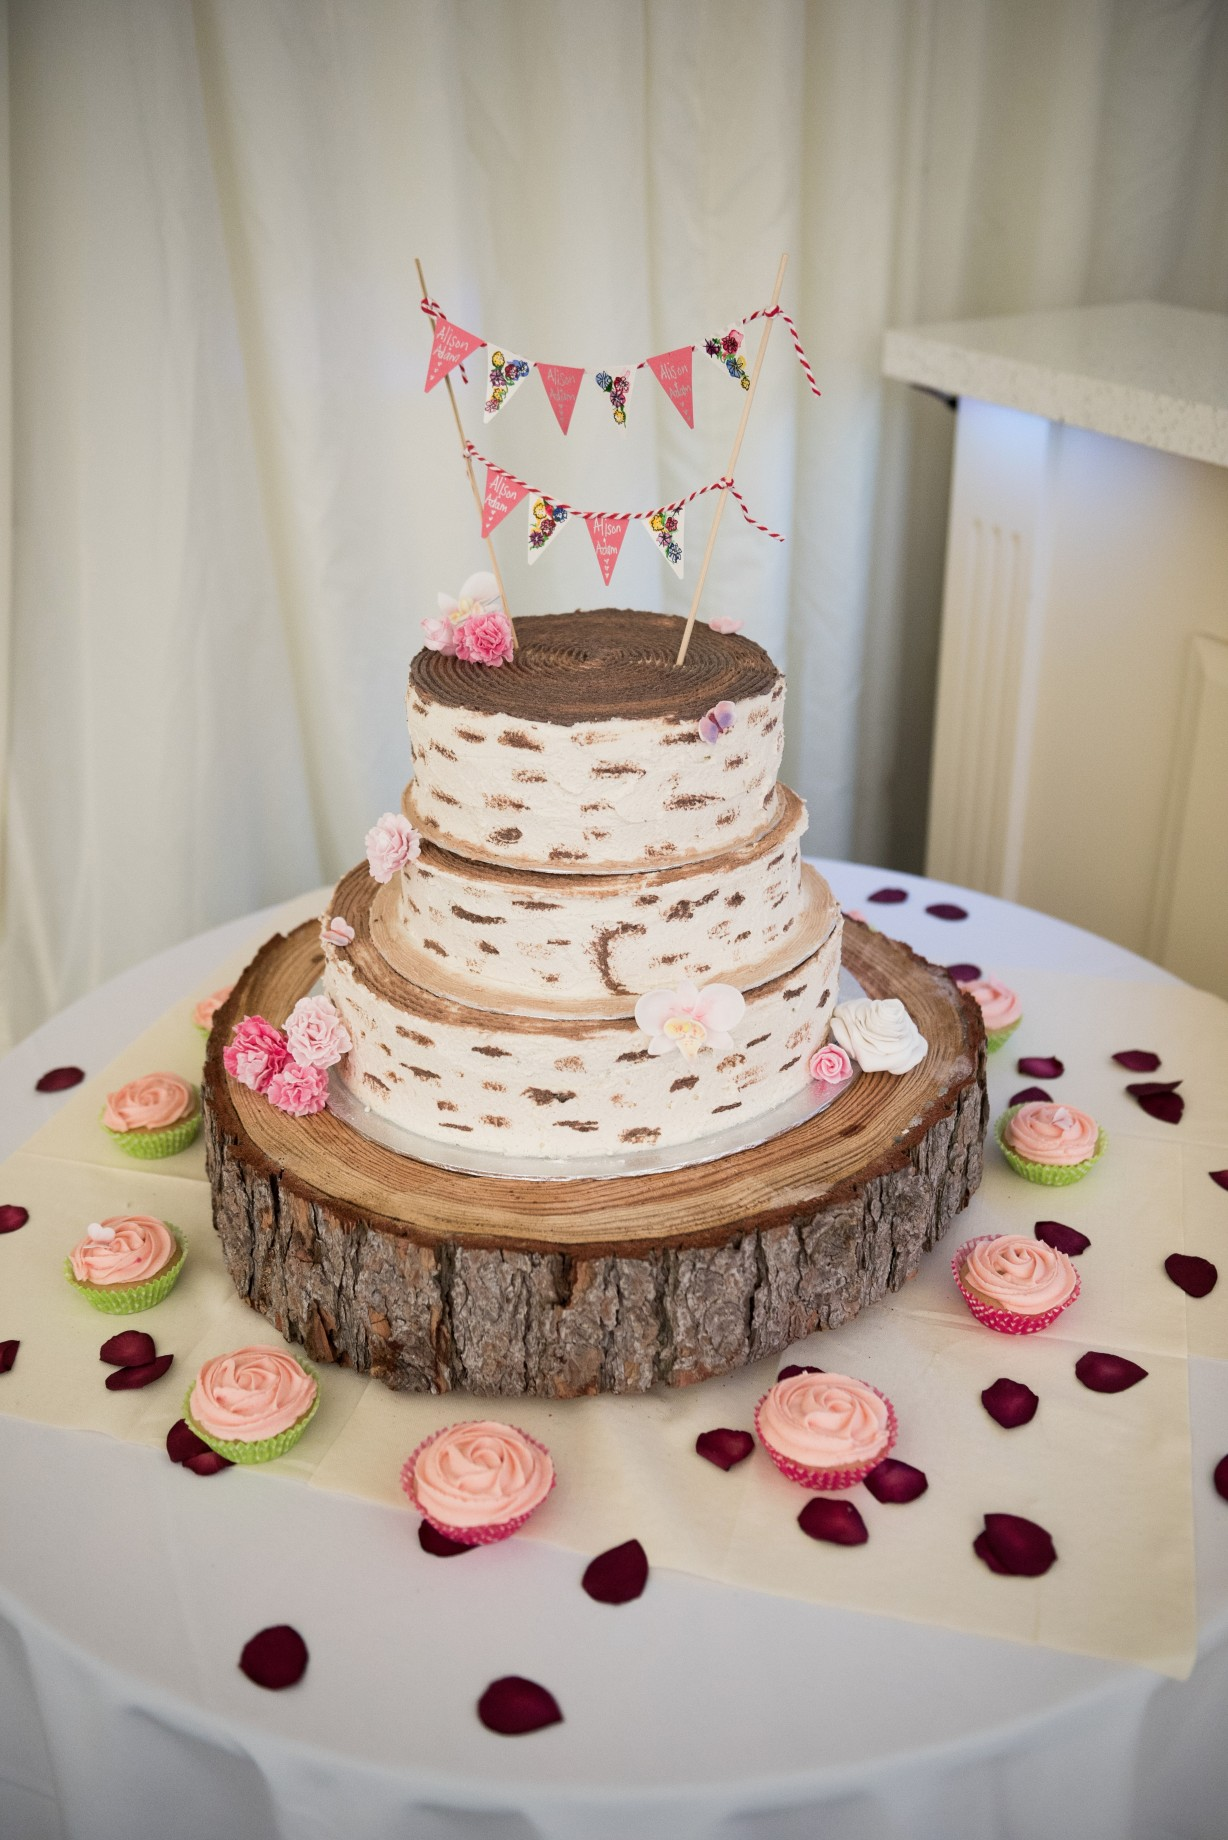 Wedding photography - wedding at Hayne house in Saltwood - the wedding cake